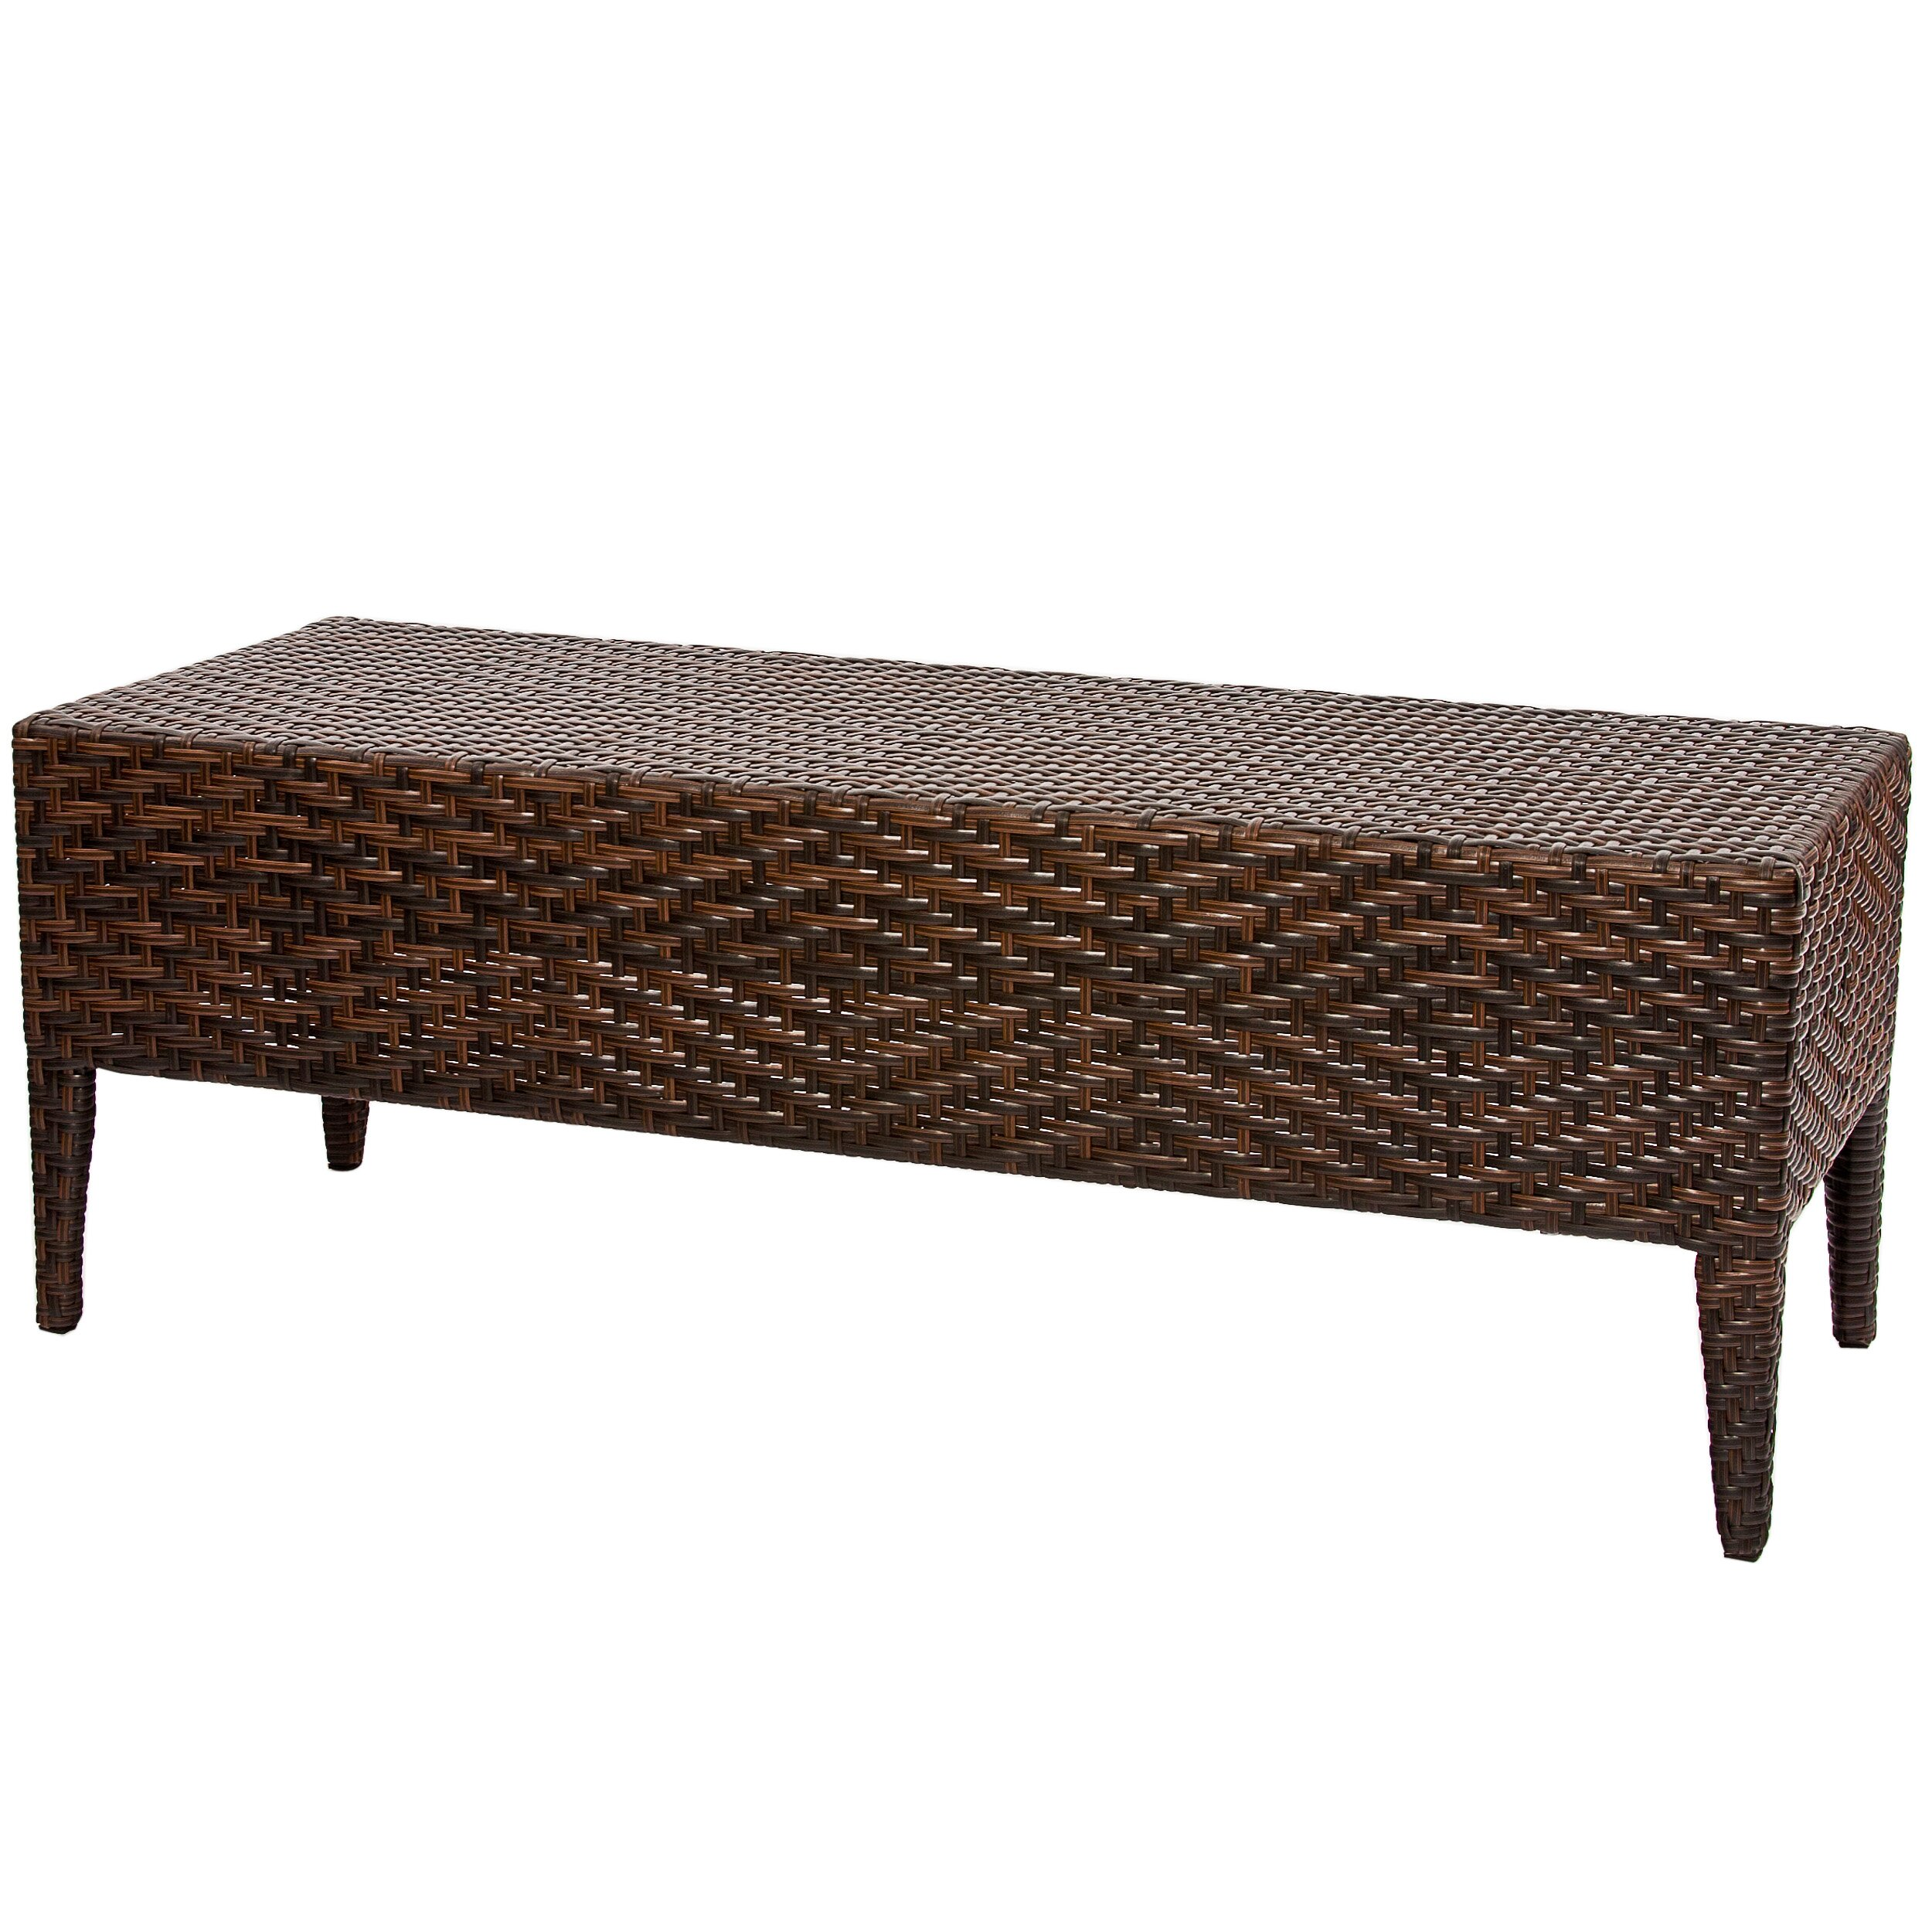 Home Loft Concepts Hobbes Wicker Garden Bench Reviews